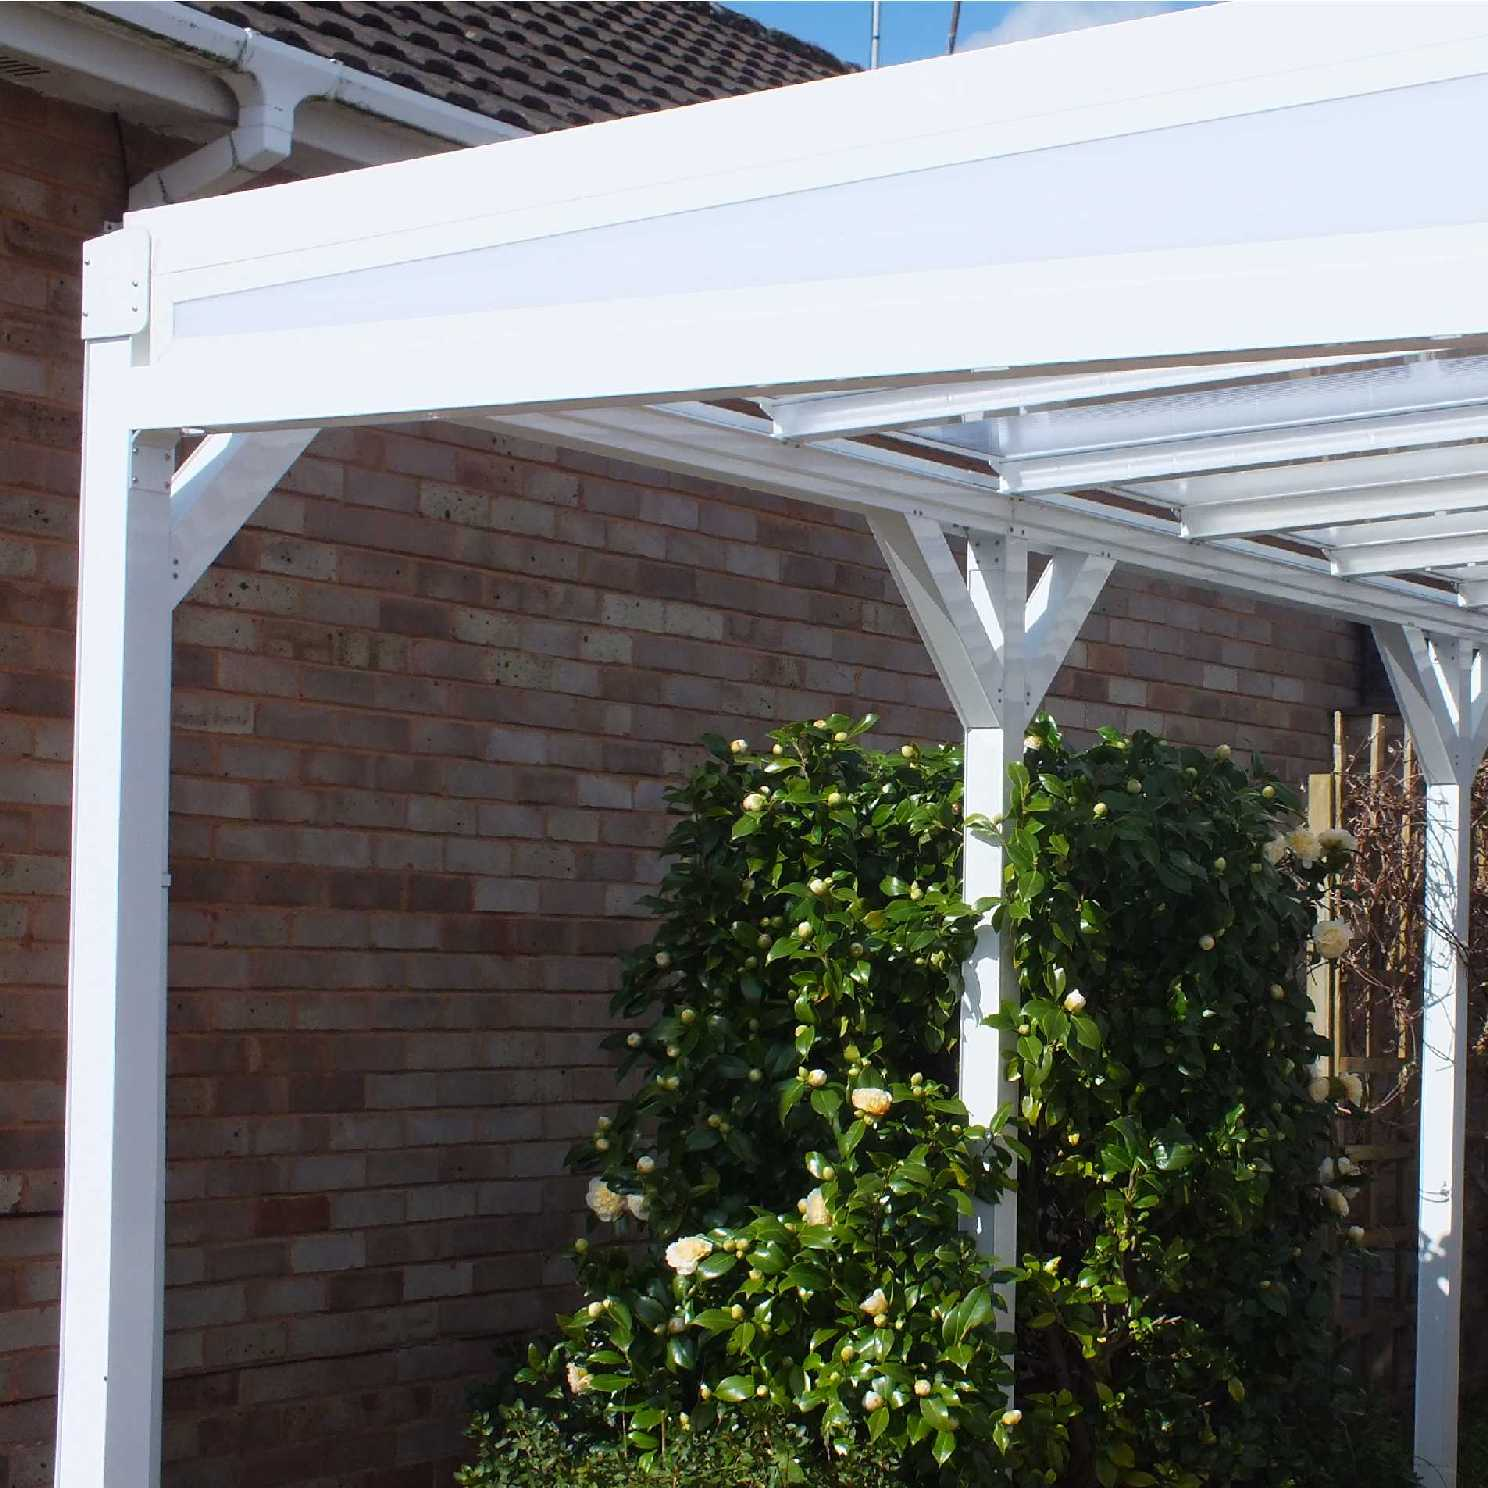 Omega Smart White Lean-To Canopy with 16mm Polycarbonate Glazing - 7.8m (W) x 4.0m (P), (4) Supporting Posts from Omega Build